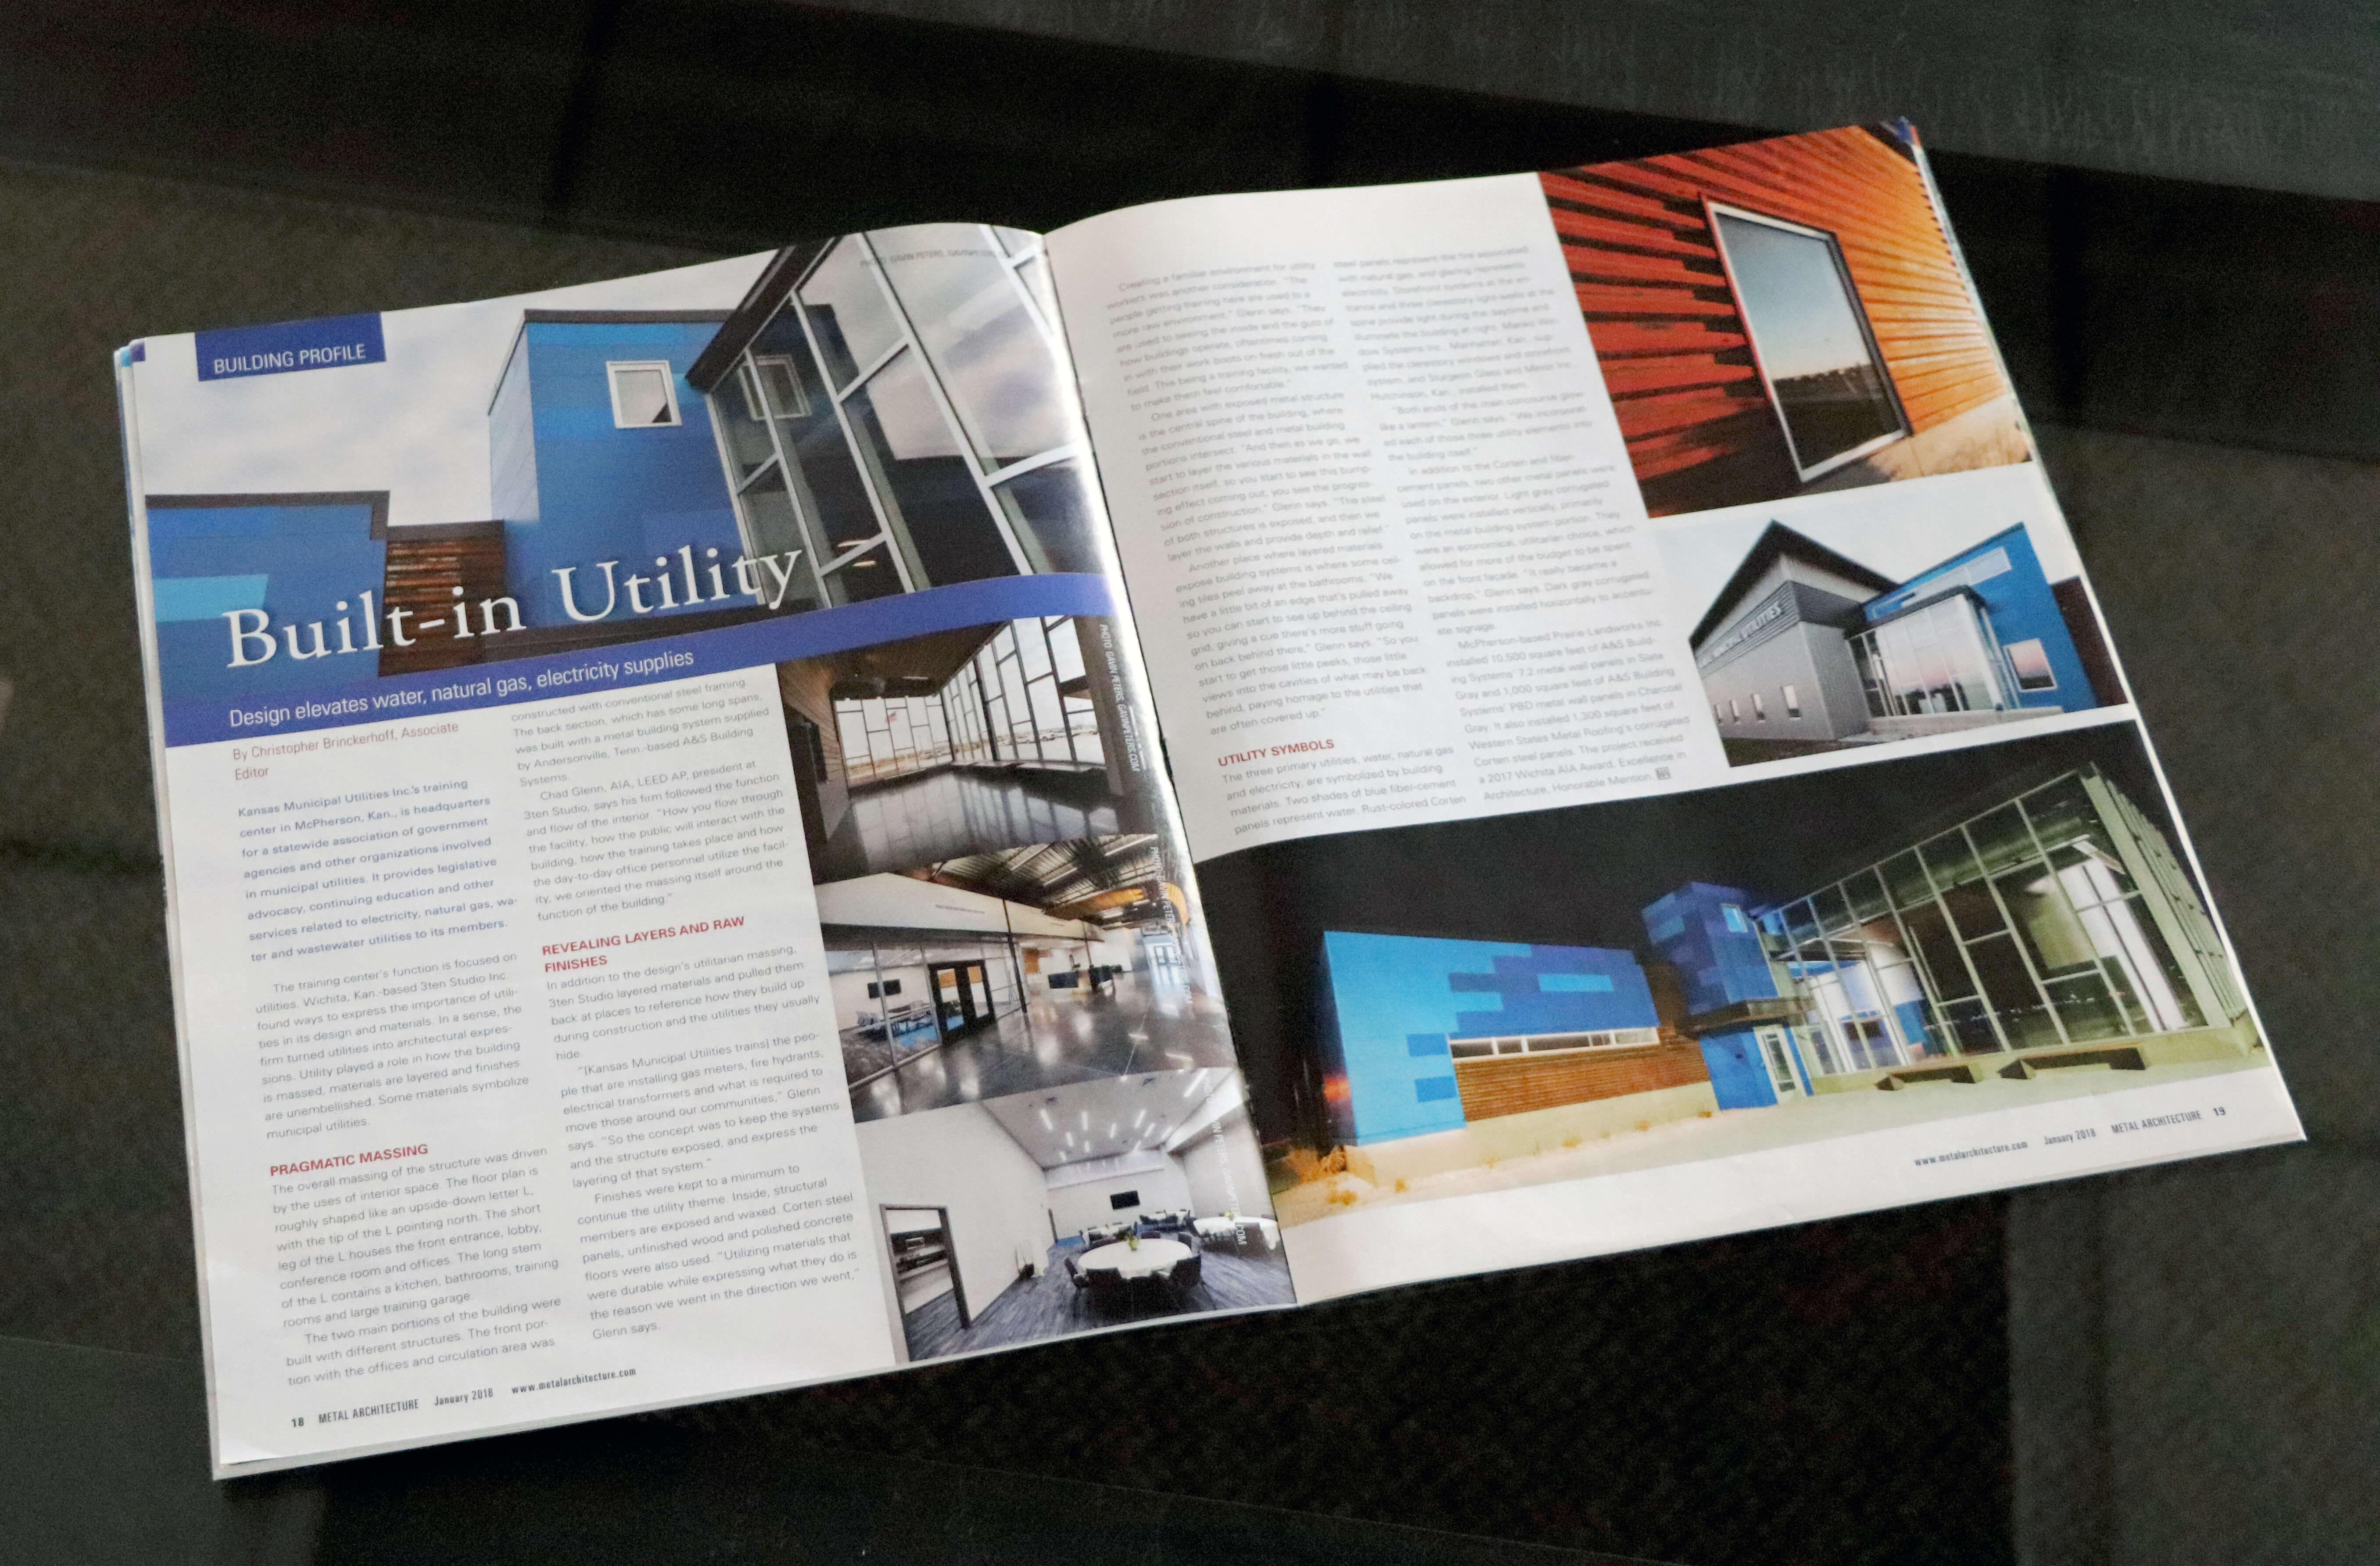 Construction project featured in national magazine